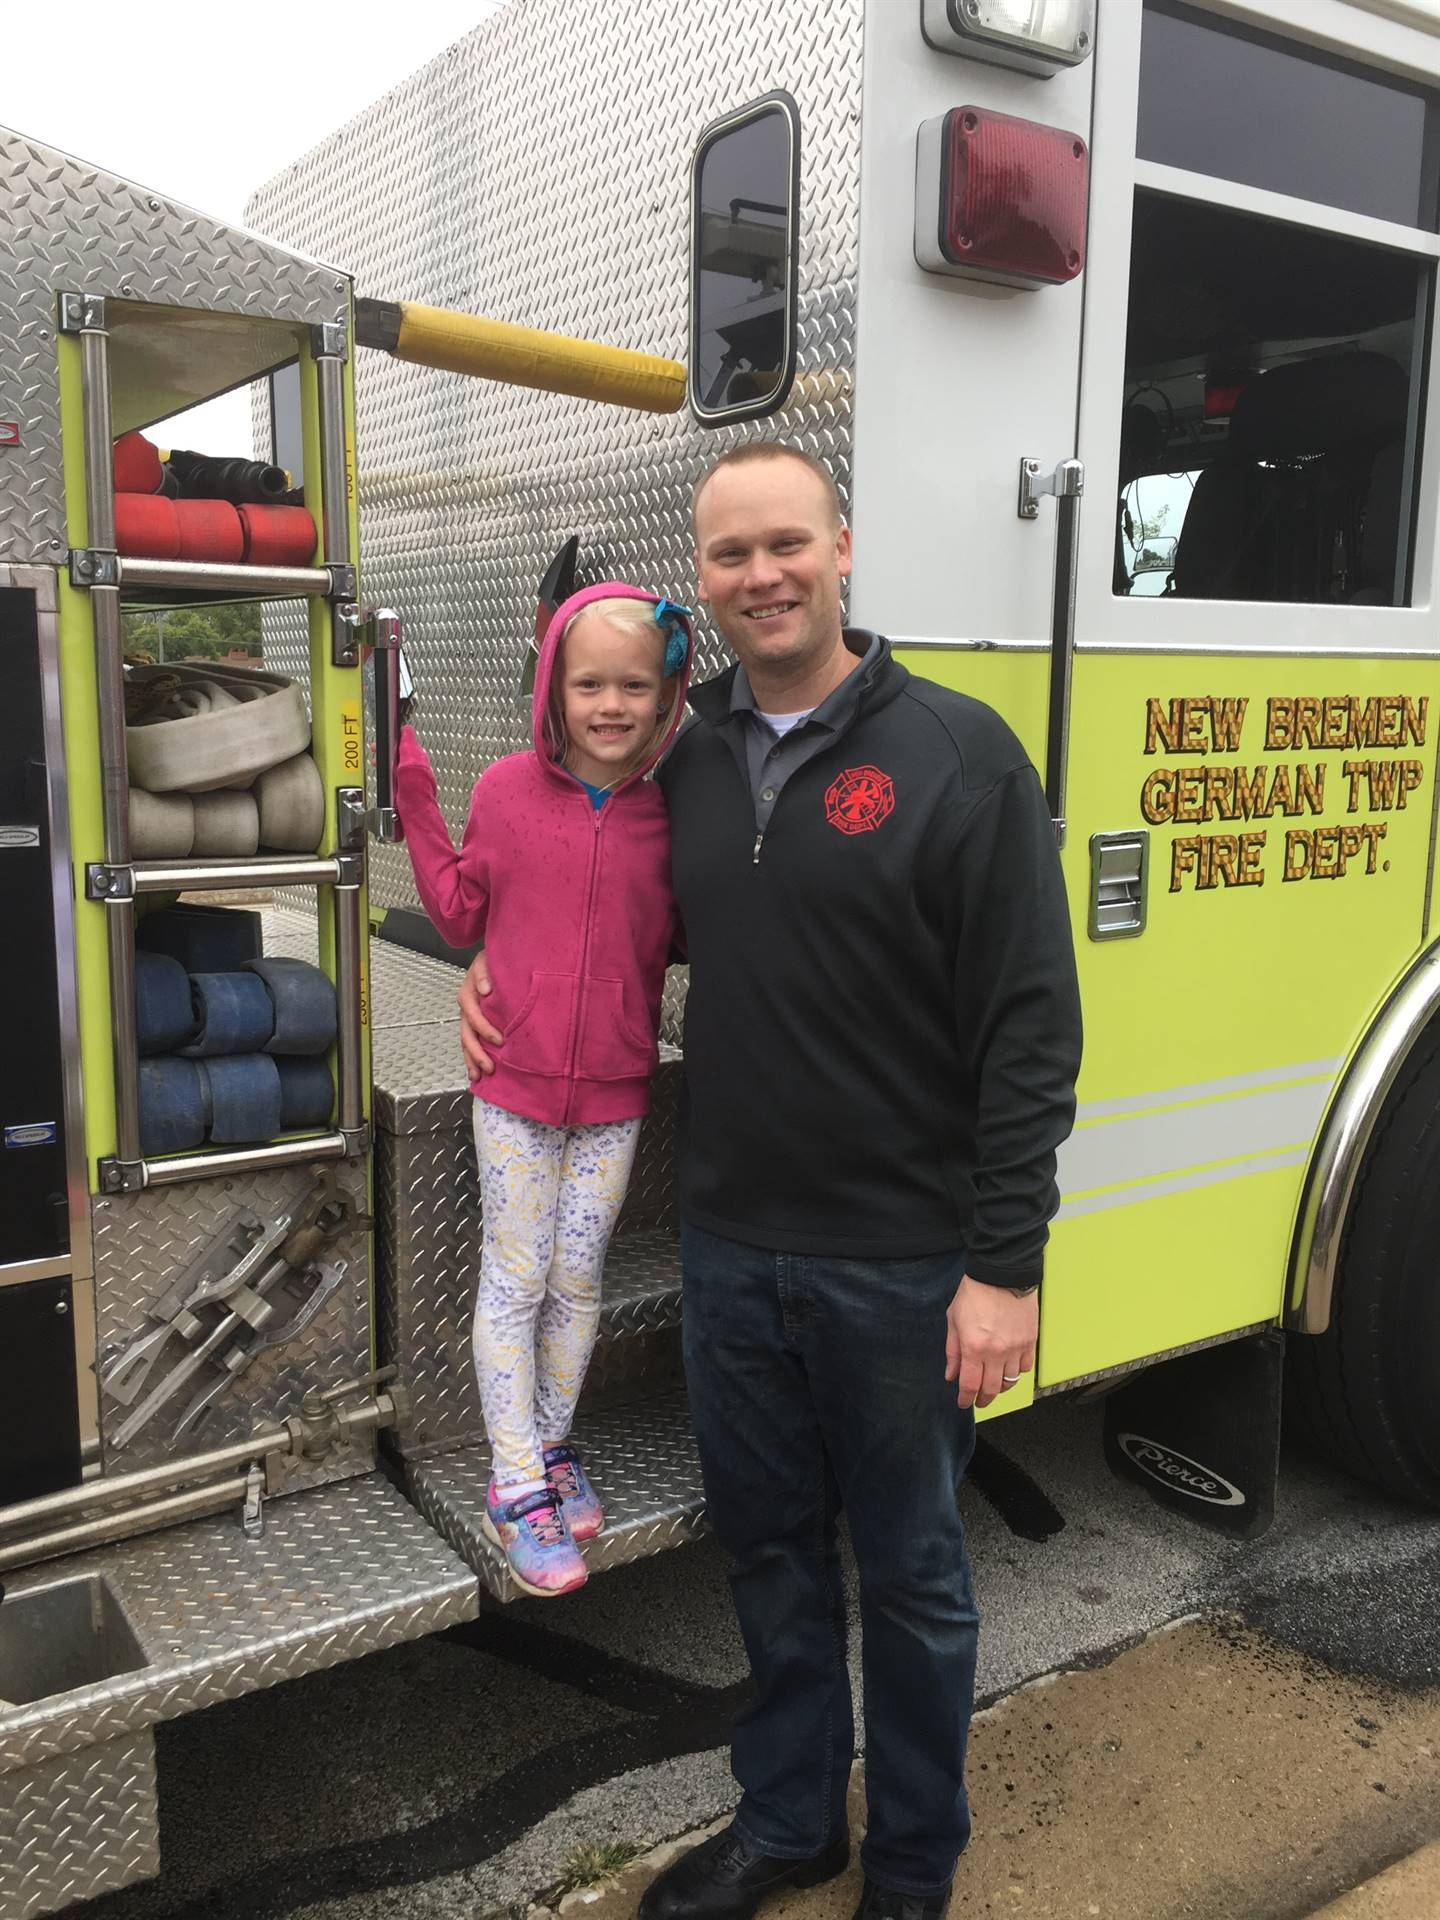 Future firefighter & Daddy the Firefighter!